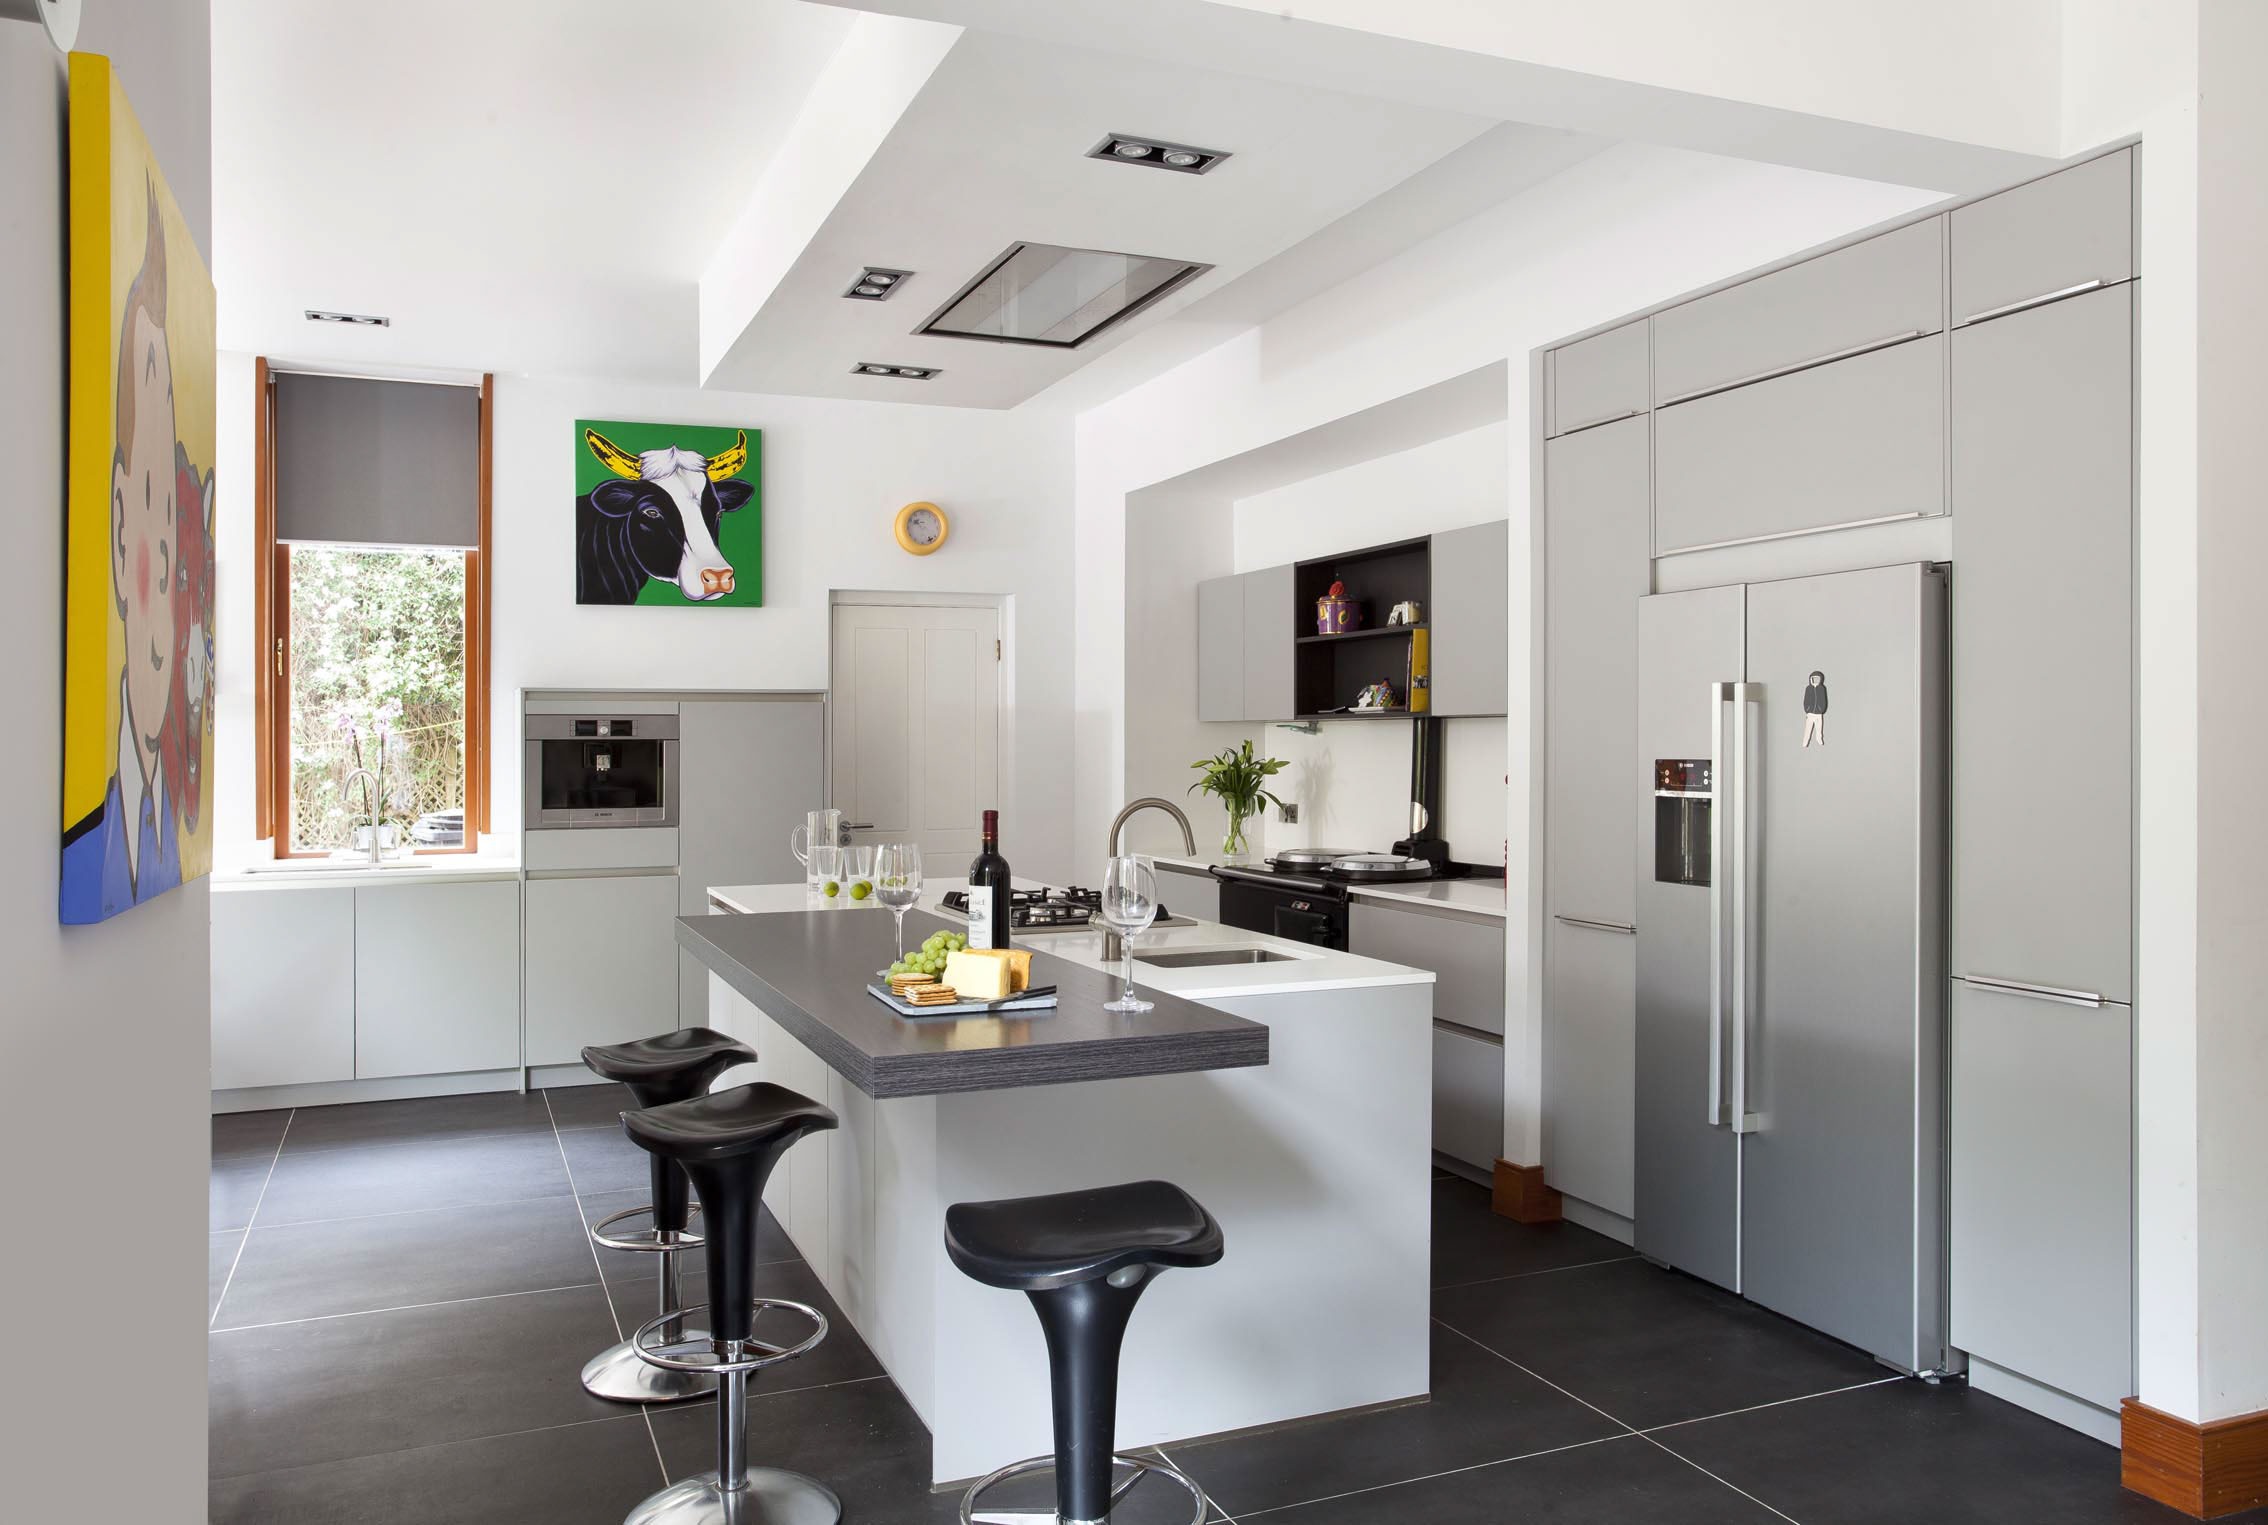 matt-grey-kitchen-1